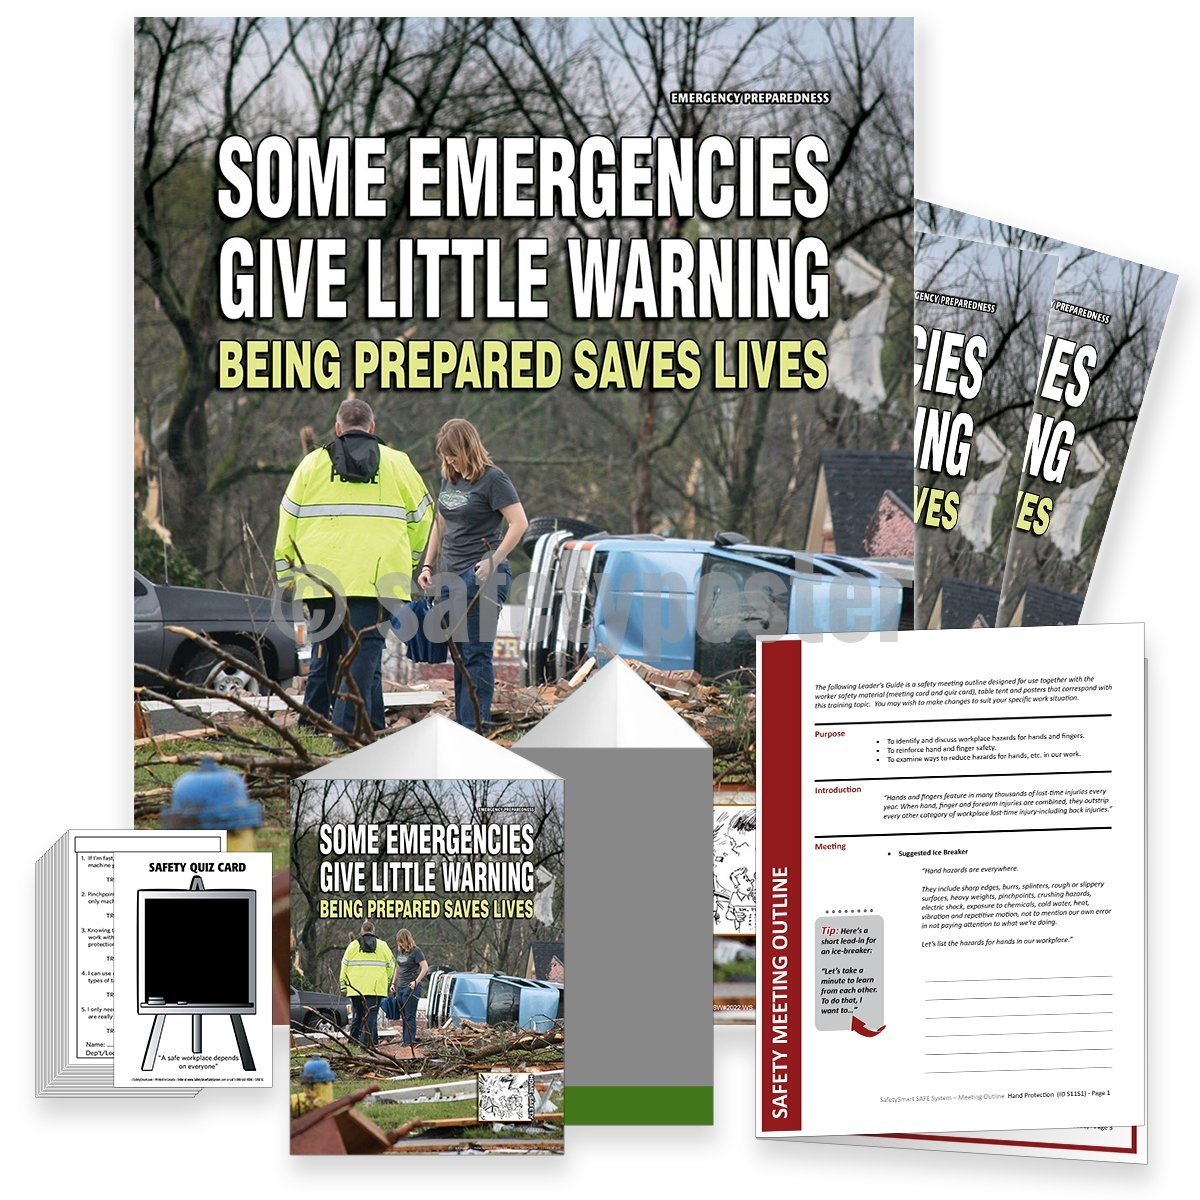 Safety Meeting Kit - Being Prepared Saves Lives Kits